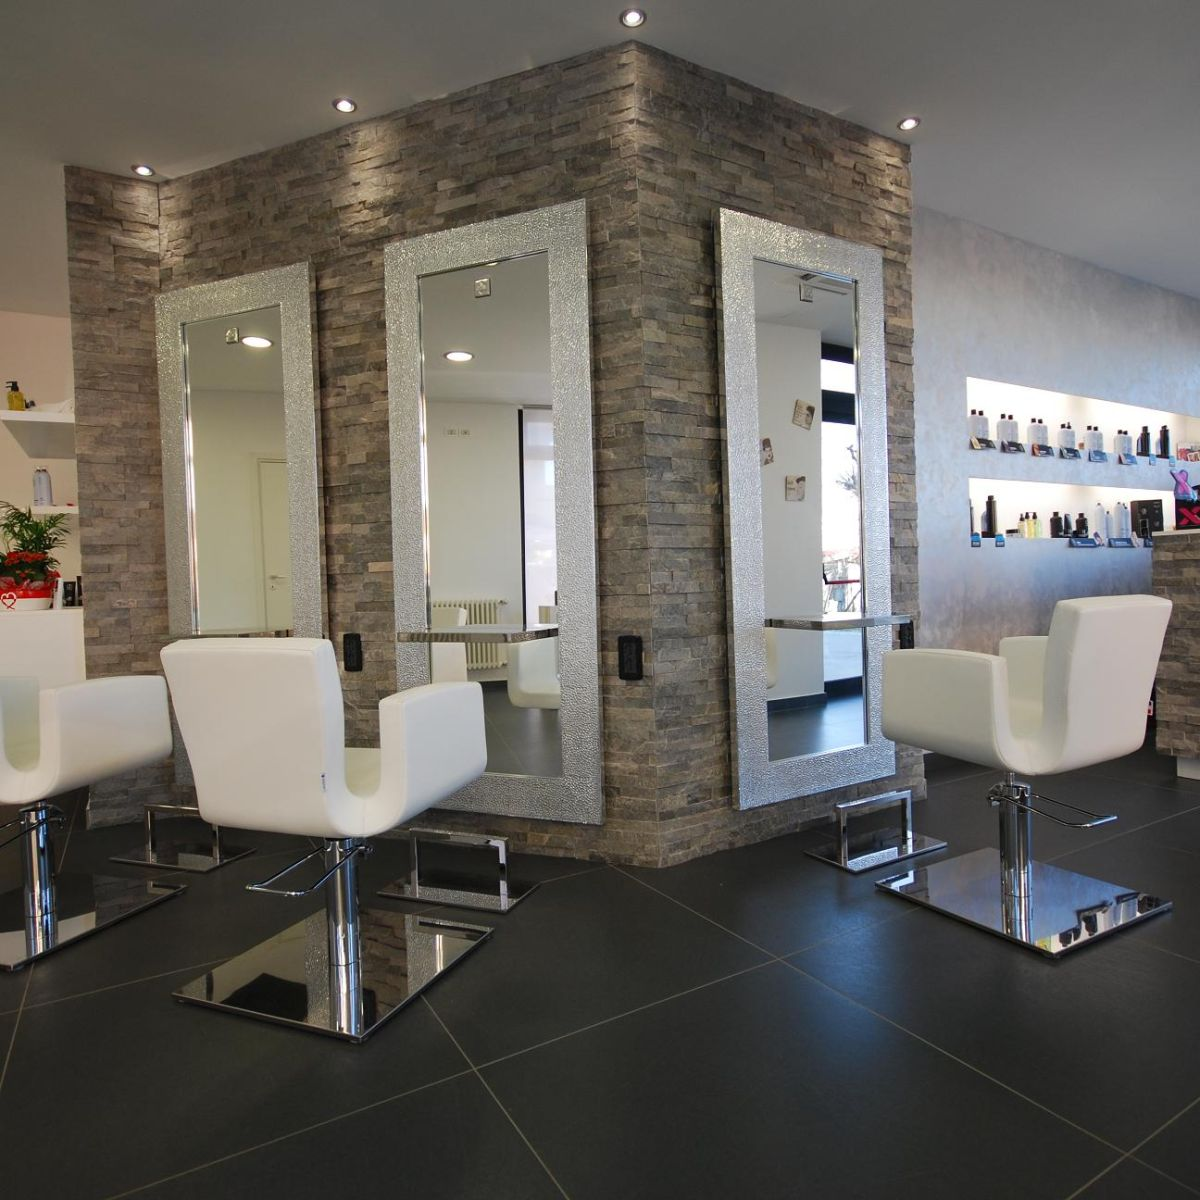 Nelson mobilier hair salon furniture made in france for Mobilier salon design